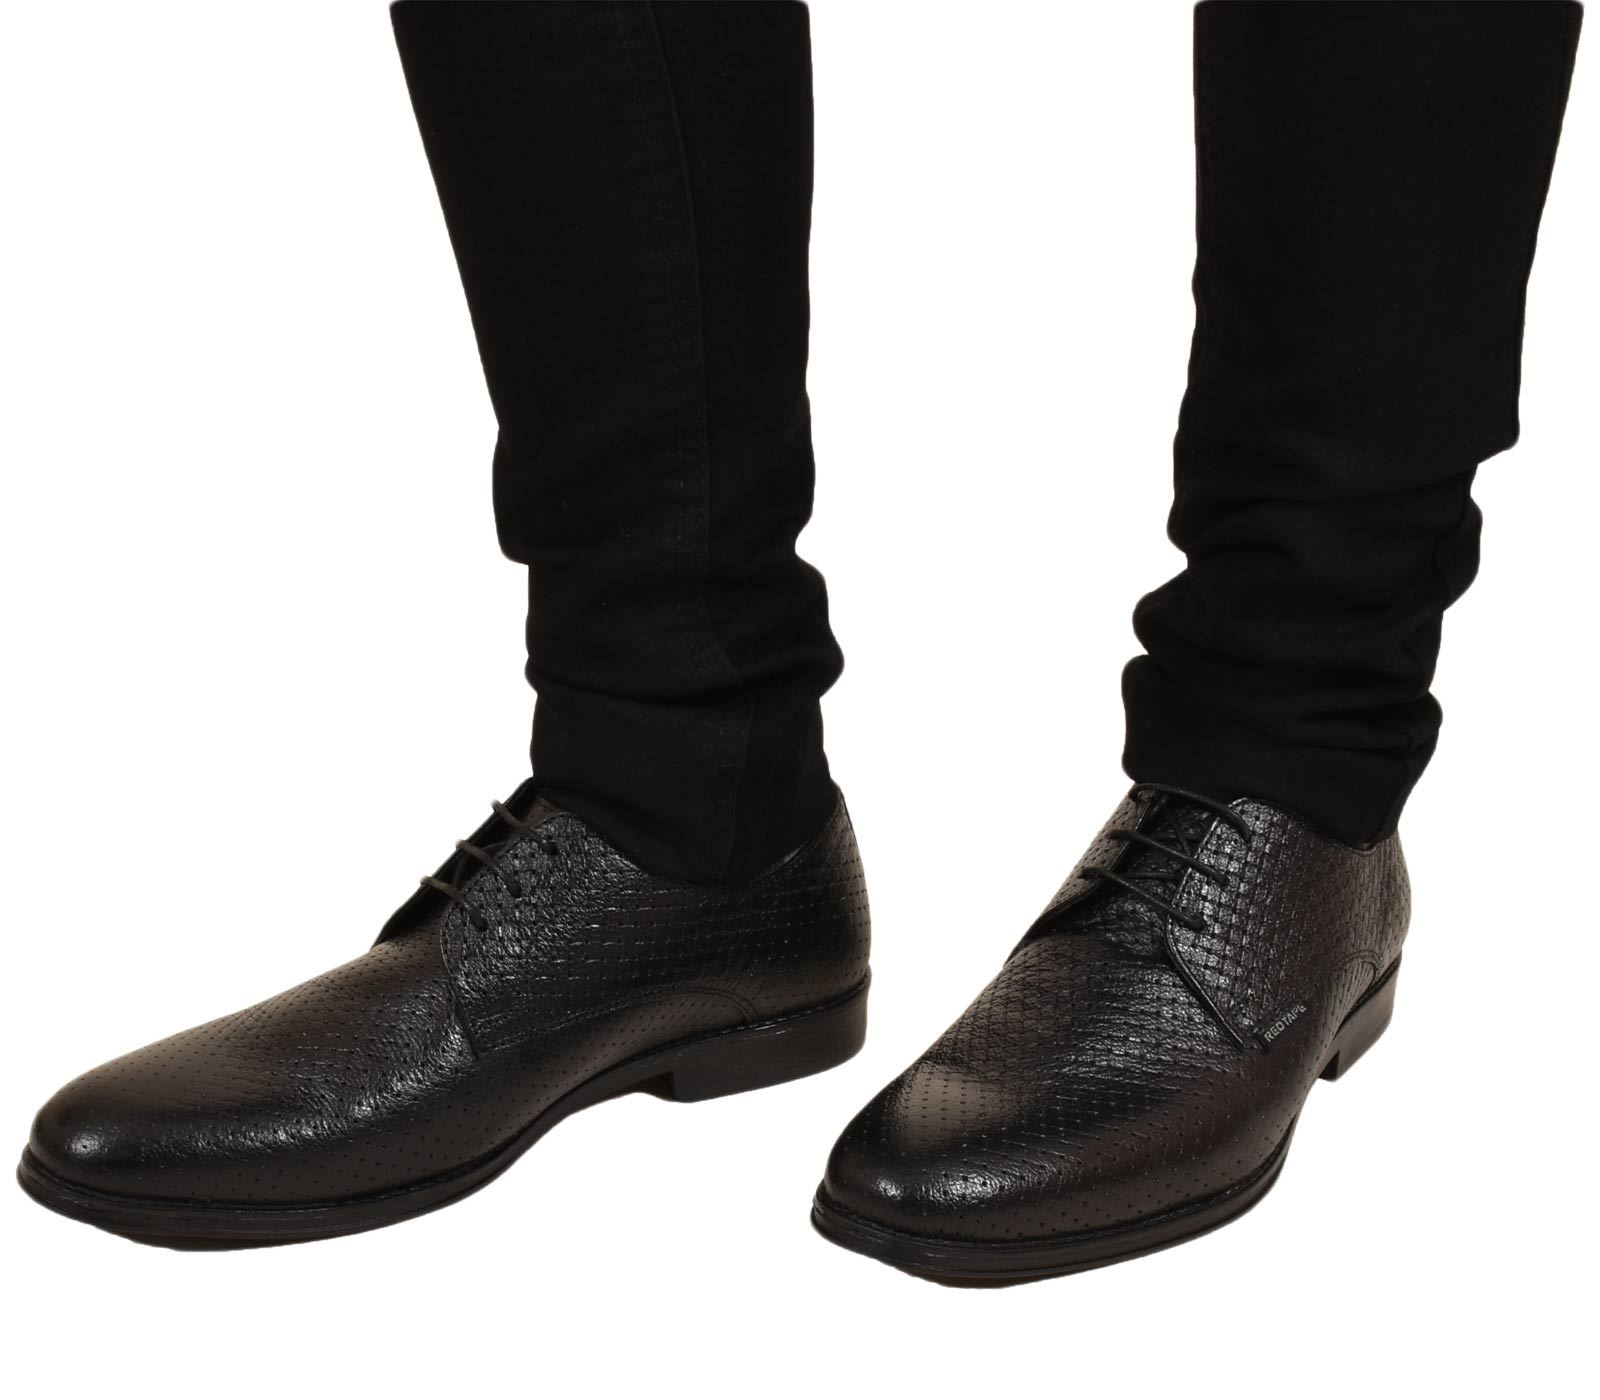 Mens-UK-Style-Leather-Lining-Formal-Office-Wedding-Smart-Work-Brogue-Shoes thumbnail 28